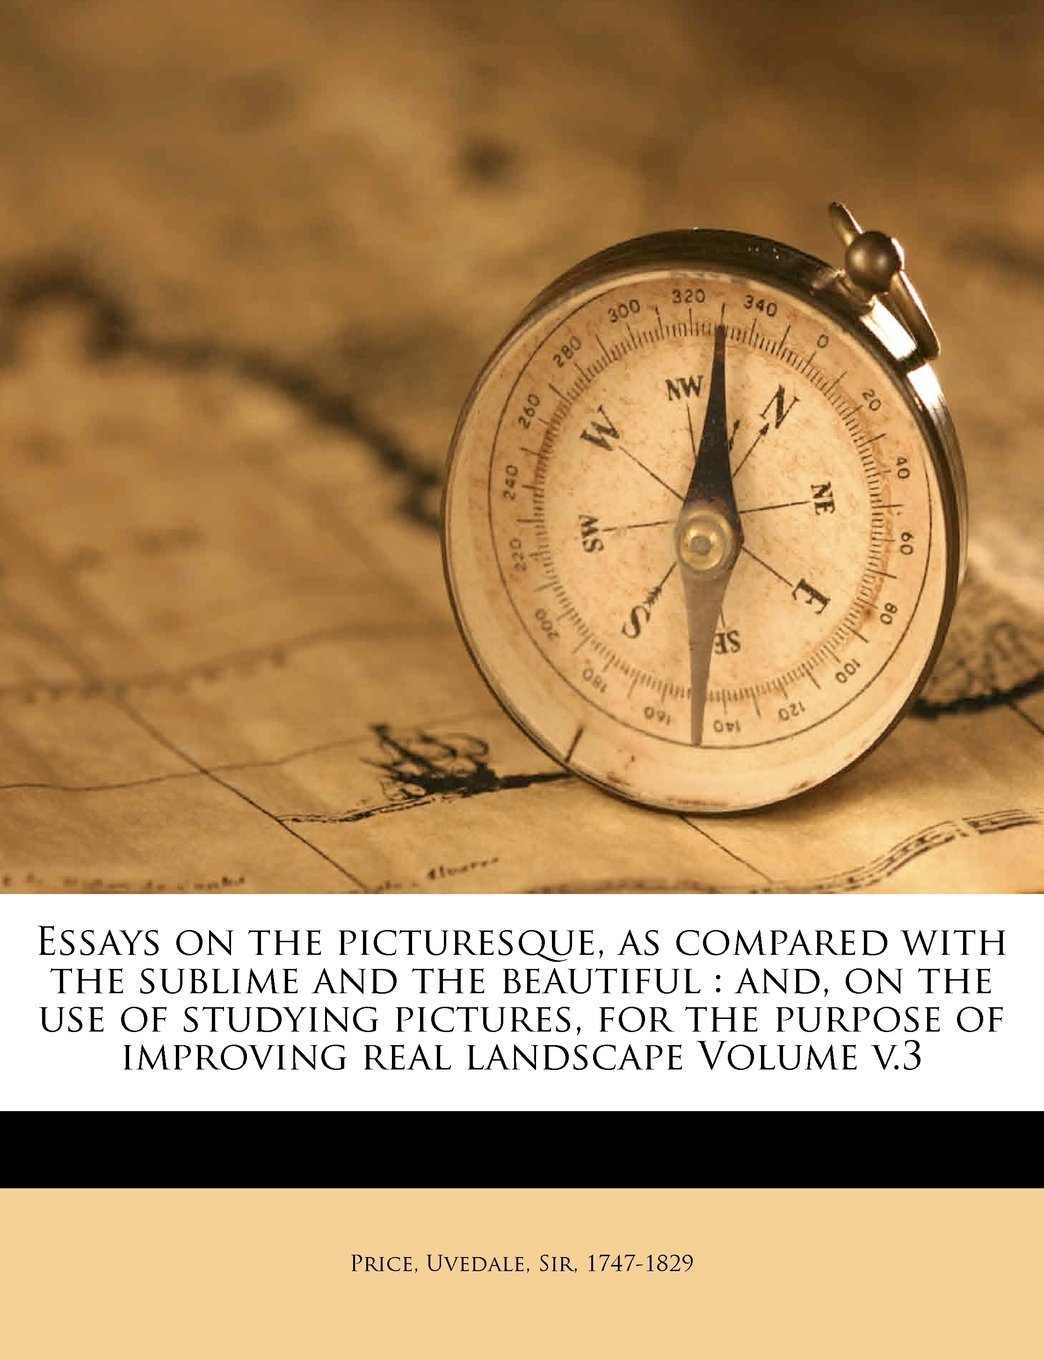 Read Online Essays on the picturesque, as compared with the sublime and the beautiful: and, on the use of studying pictures, for the purpose of improving real landscape Volume v.3 pdf